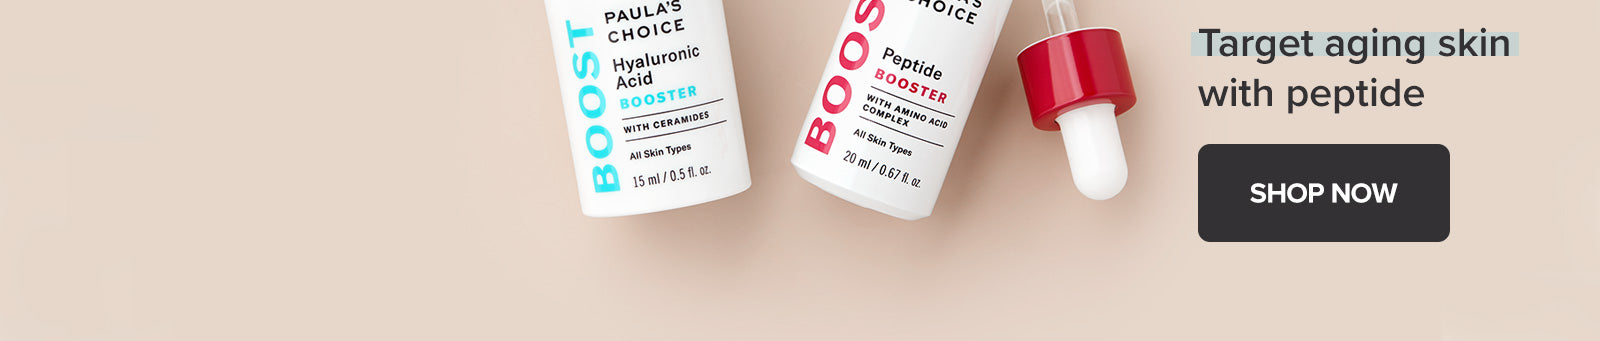 Discover Our Peptide Collection